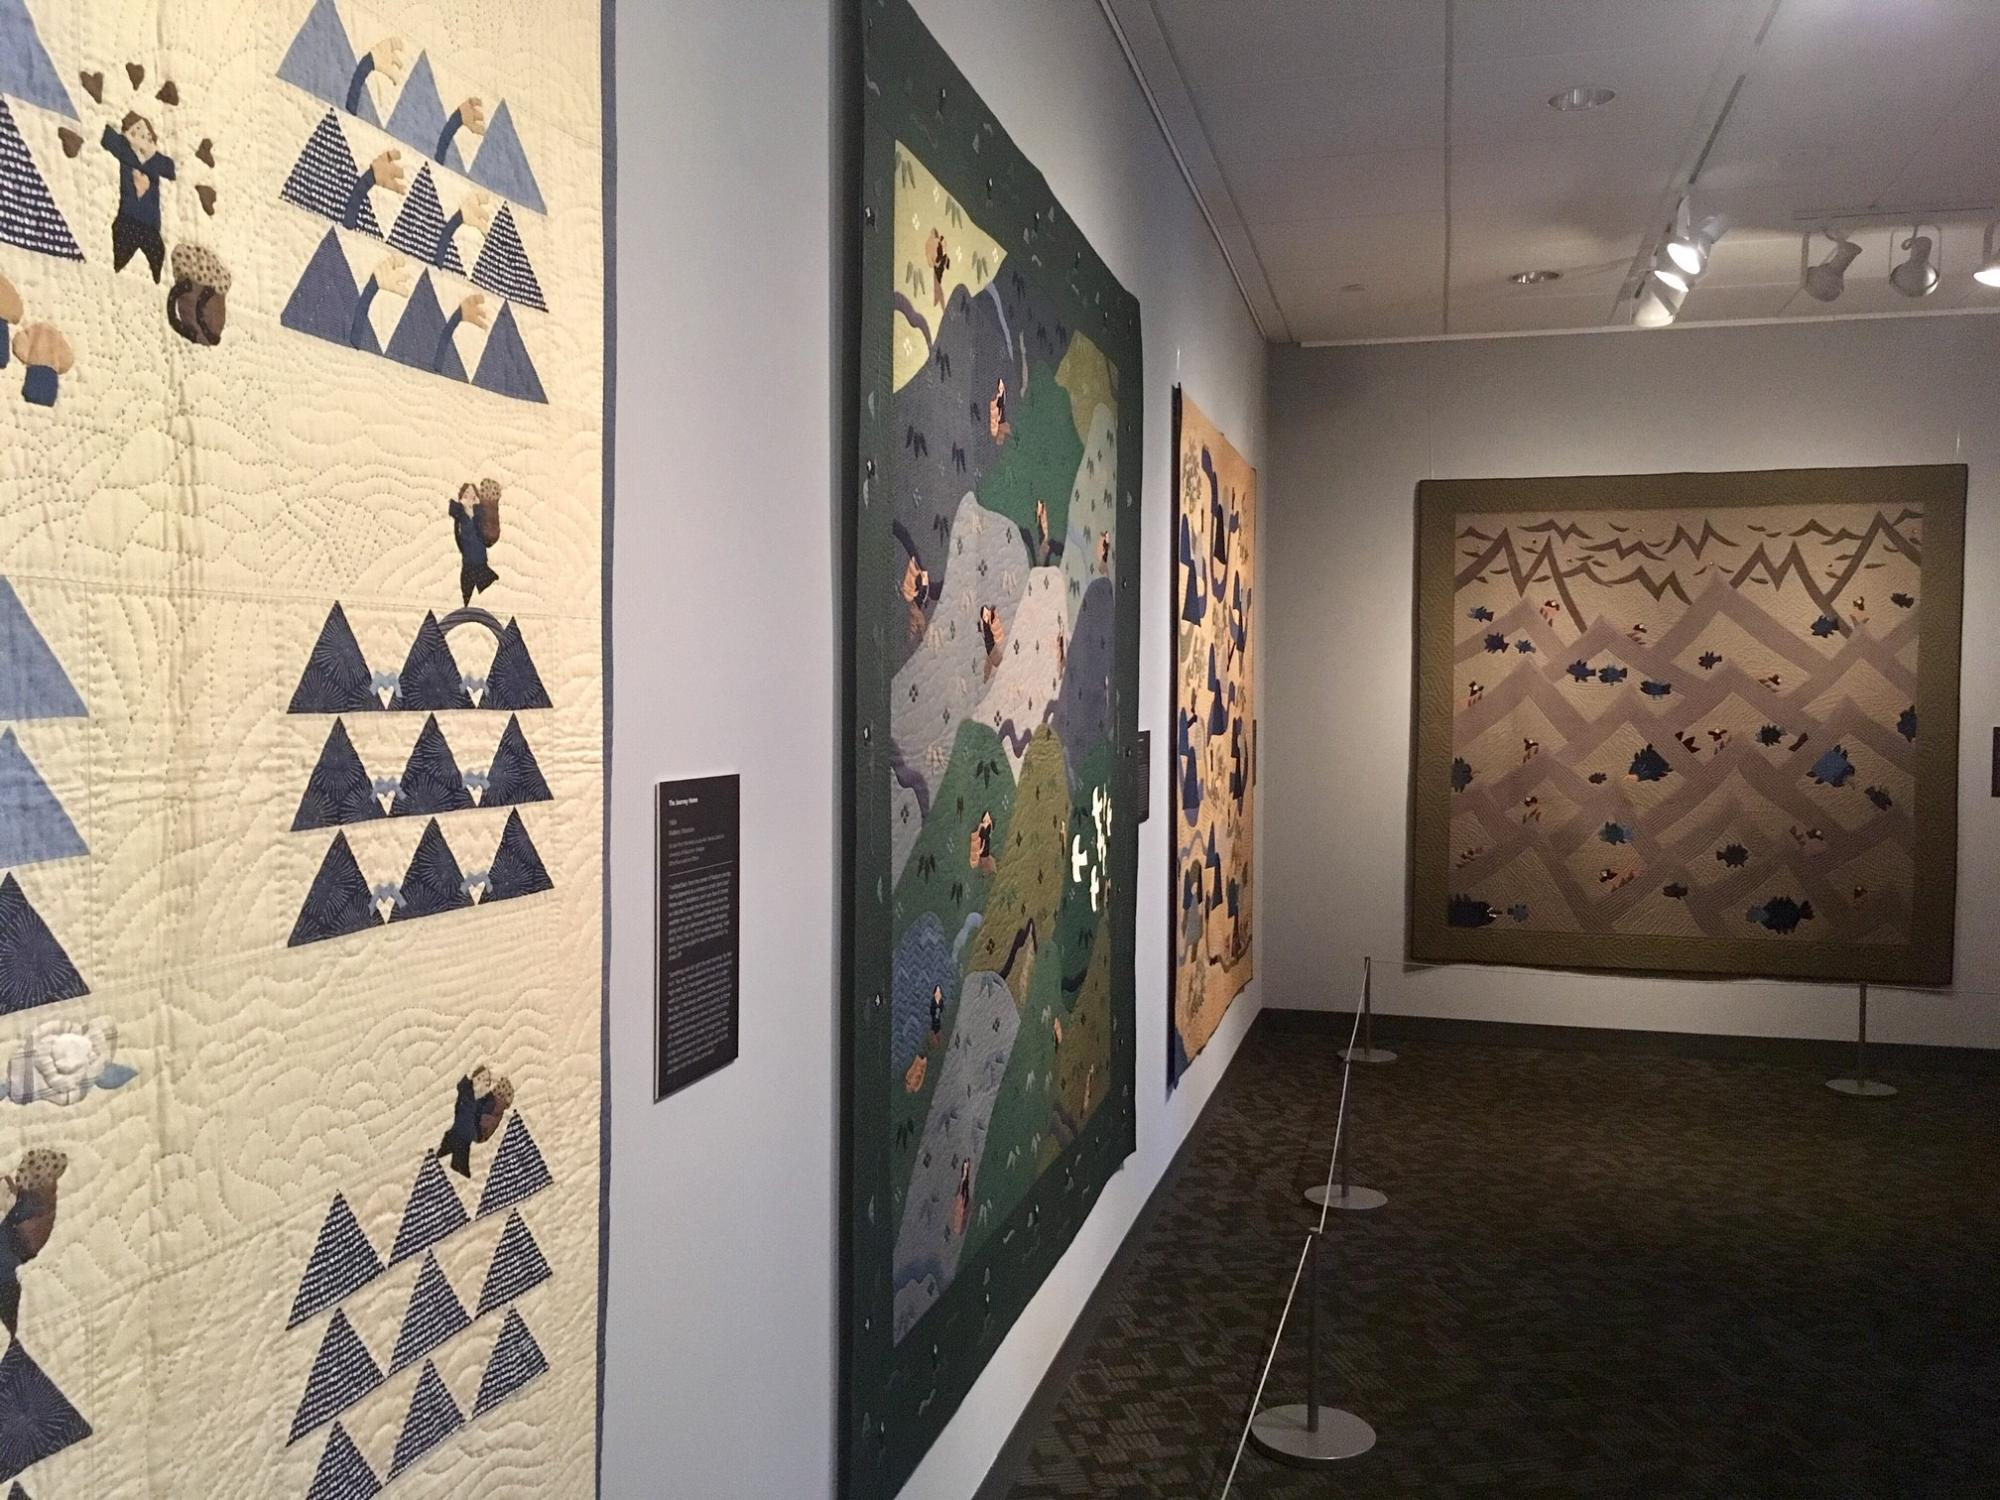 Three Rumi O'Brien quilts on display in a gallery.